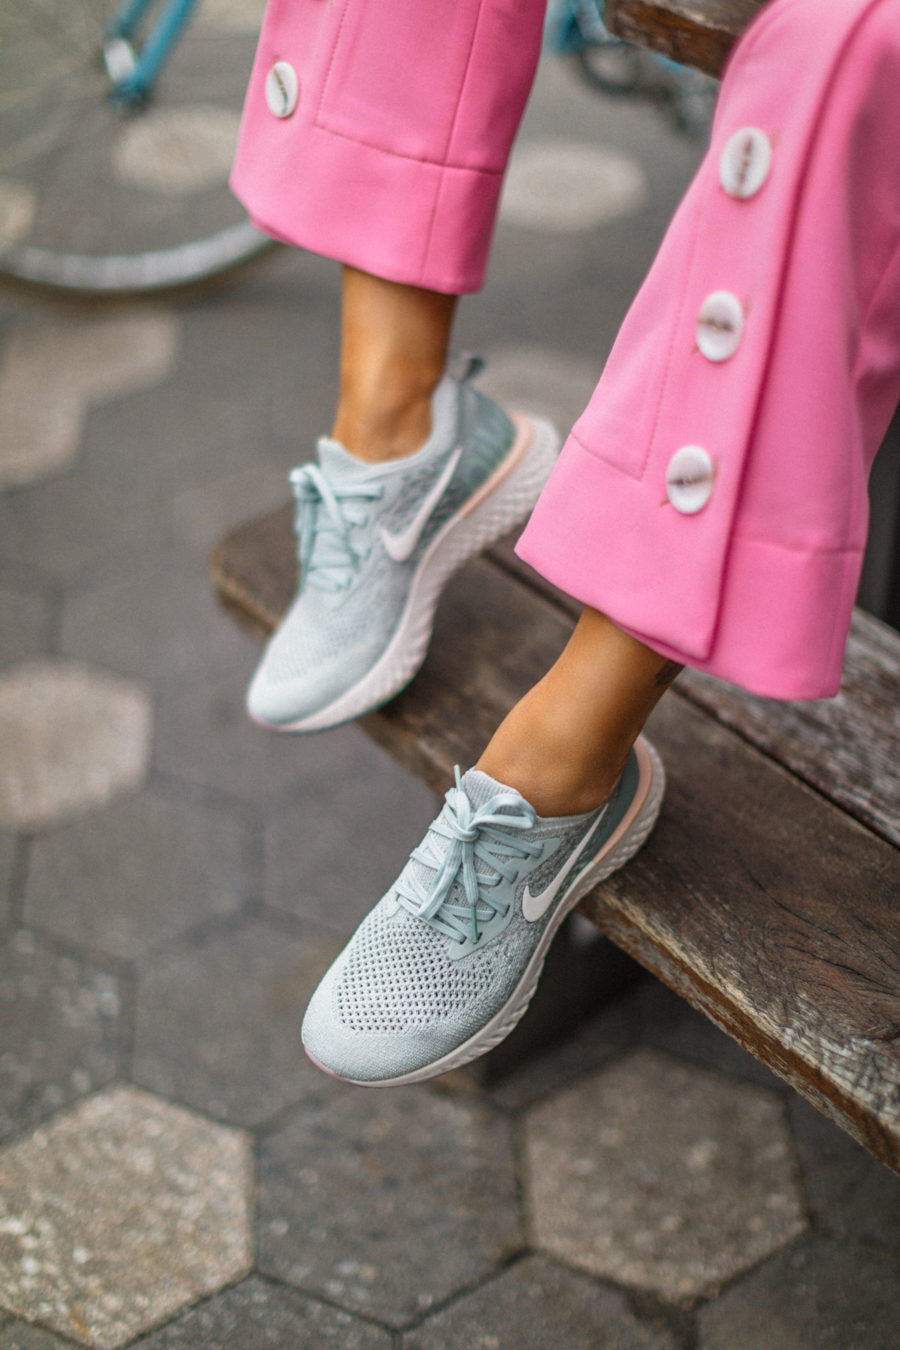 spring 2019 capsule wardrobe - Pink Trousers with sneakers, Nike Epic React Sneakers, fashion sneakers // Notjessfashion.com